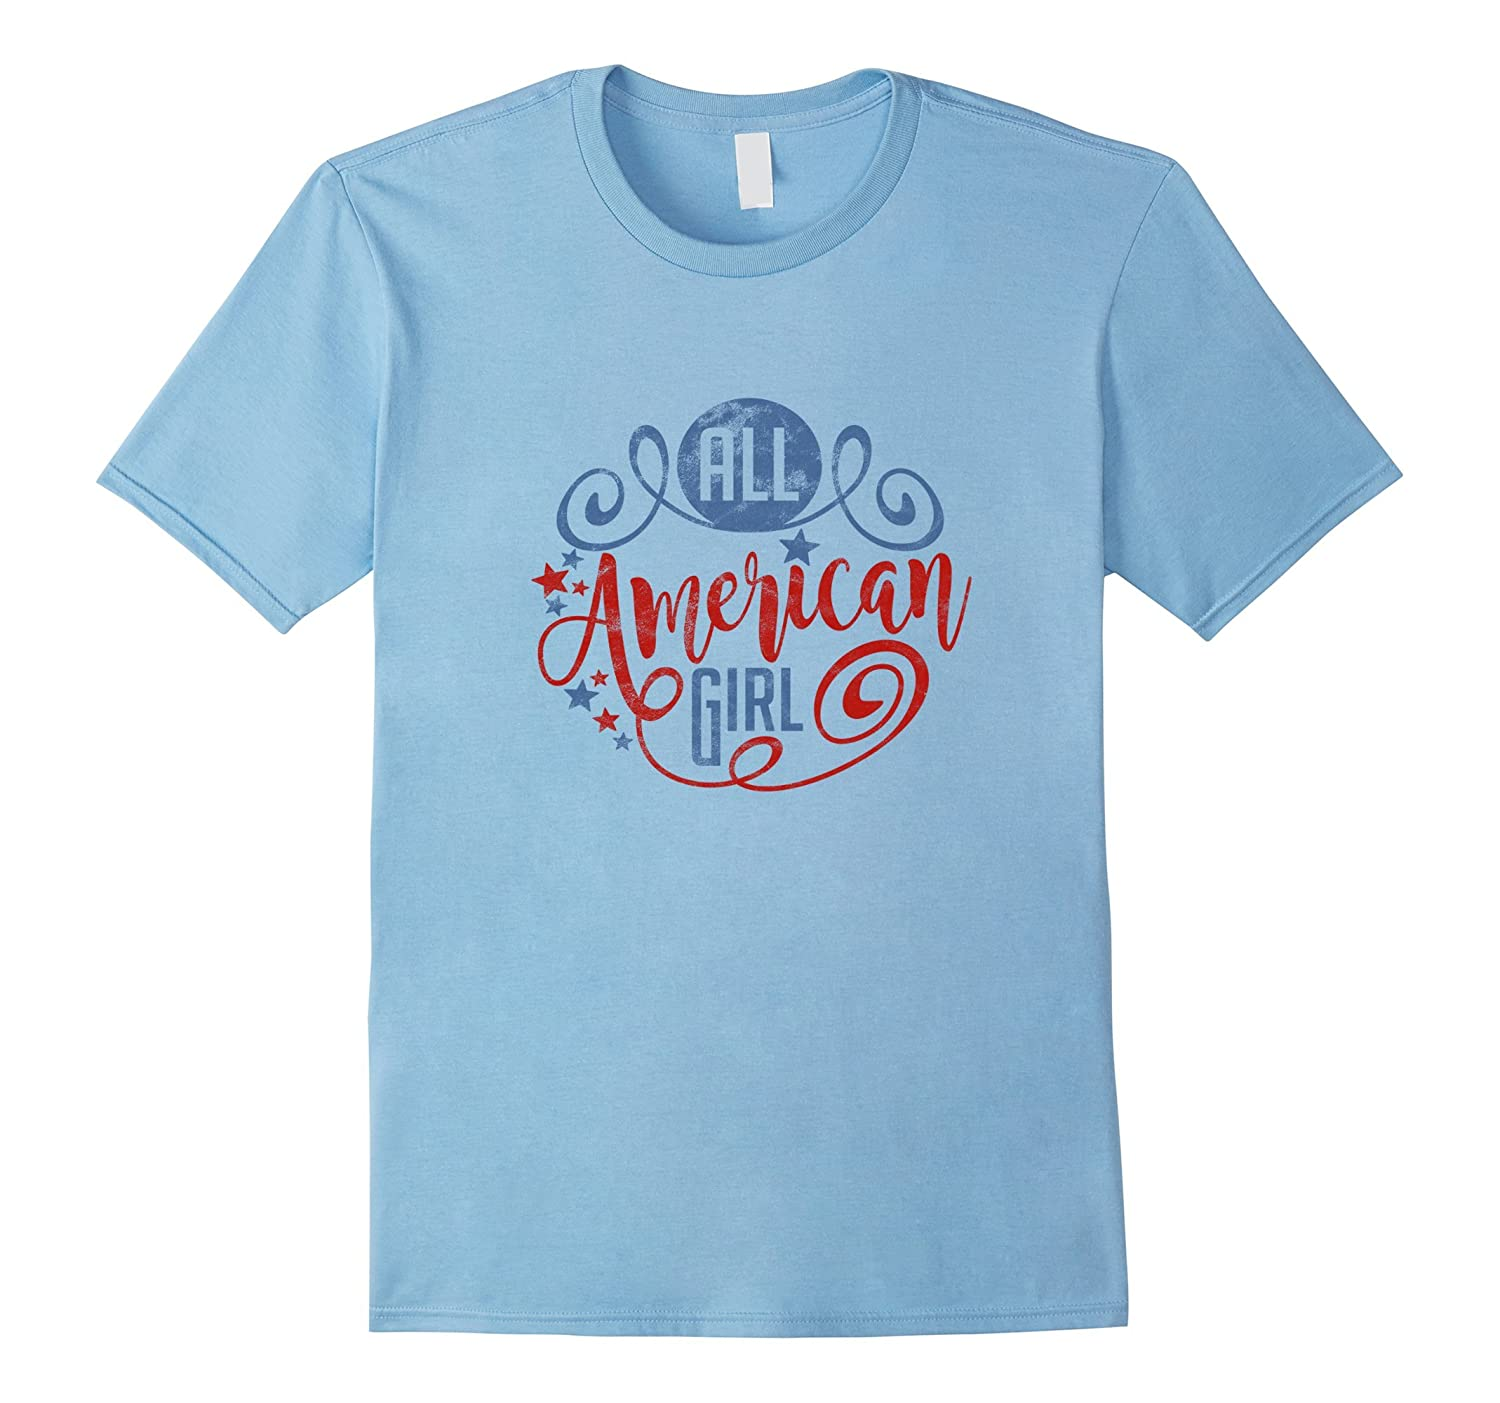 All American Girl T-Shirt Vintage Texture-PL